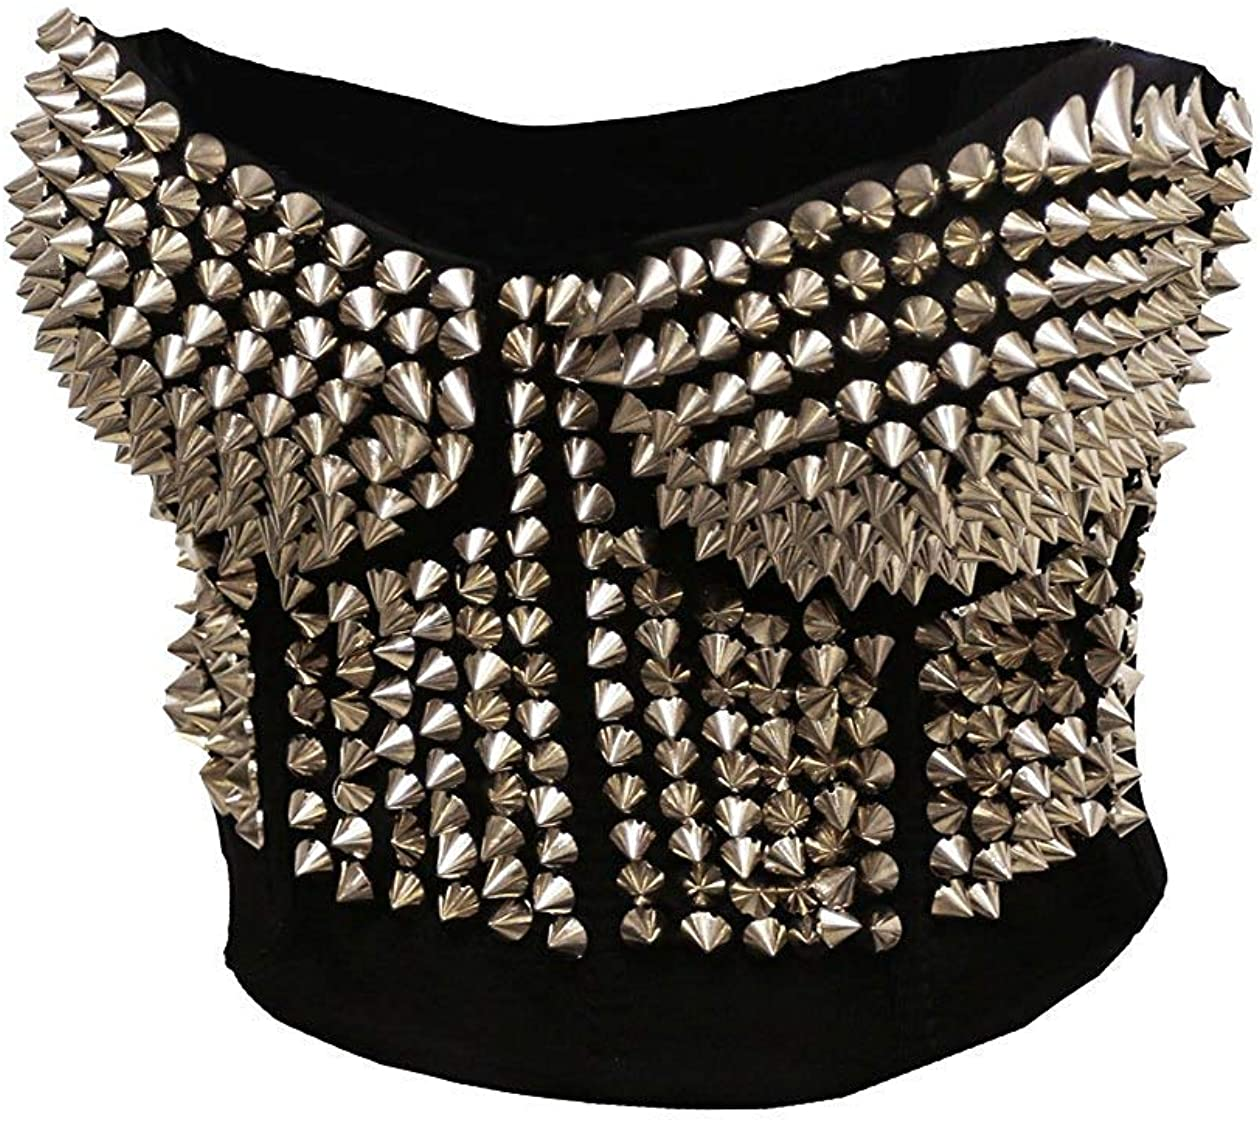 Coolweary Women's&Lady's Fashion Madonna Style Metallic Studs Bustier Sport Bra Studded Rivet Corset Top